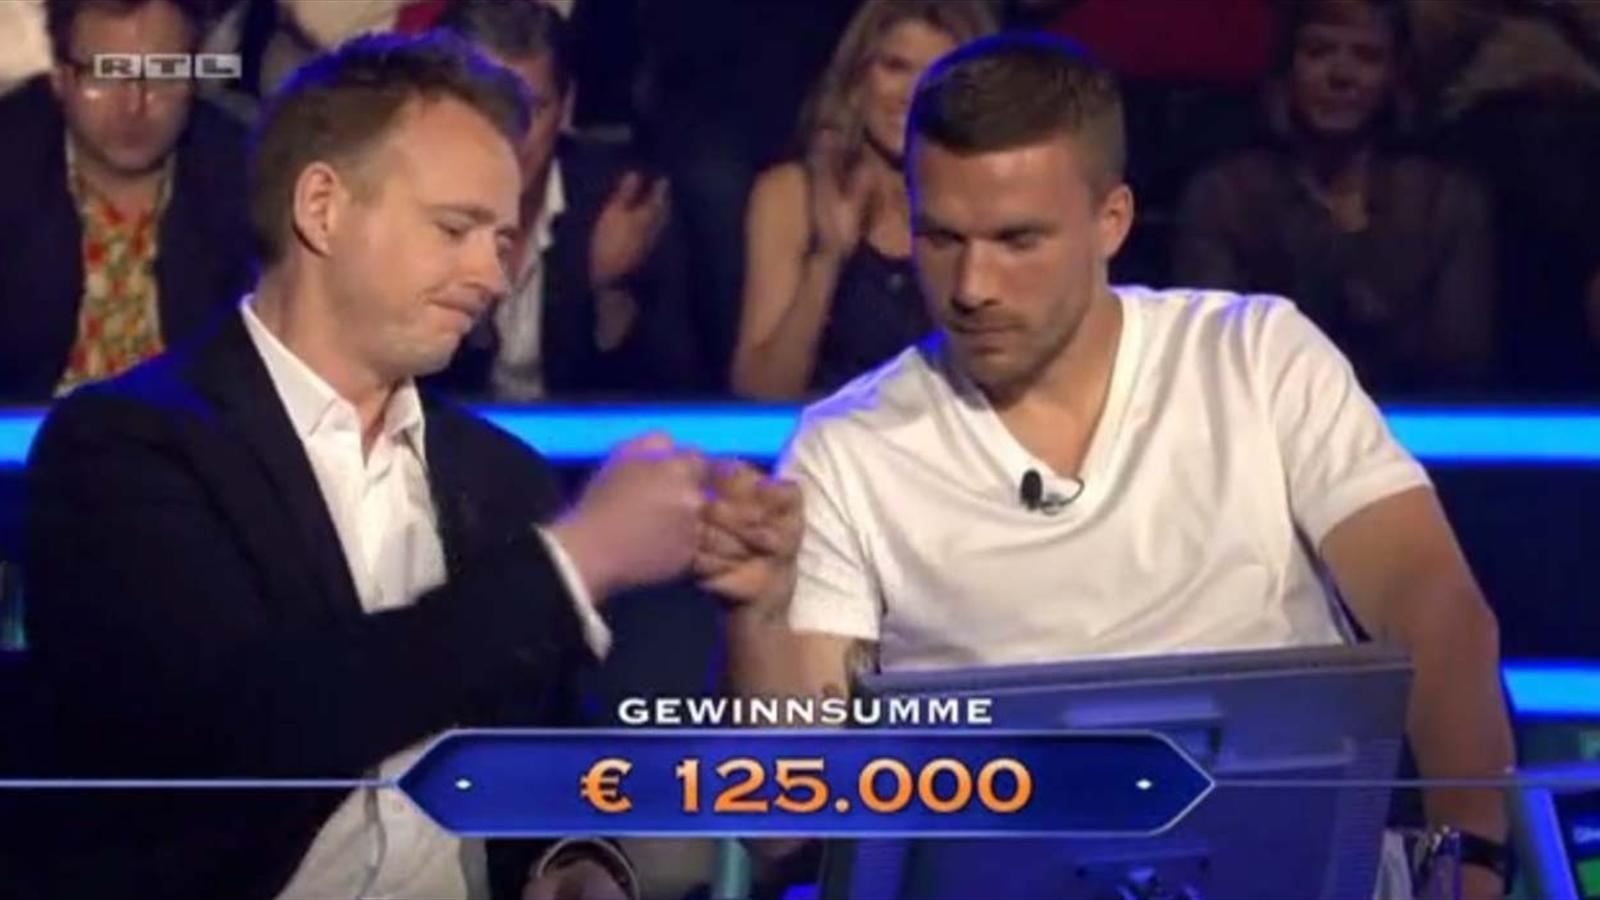 Lukas Podolski on the German 'Who wants to be a millionaire'